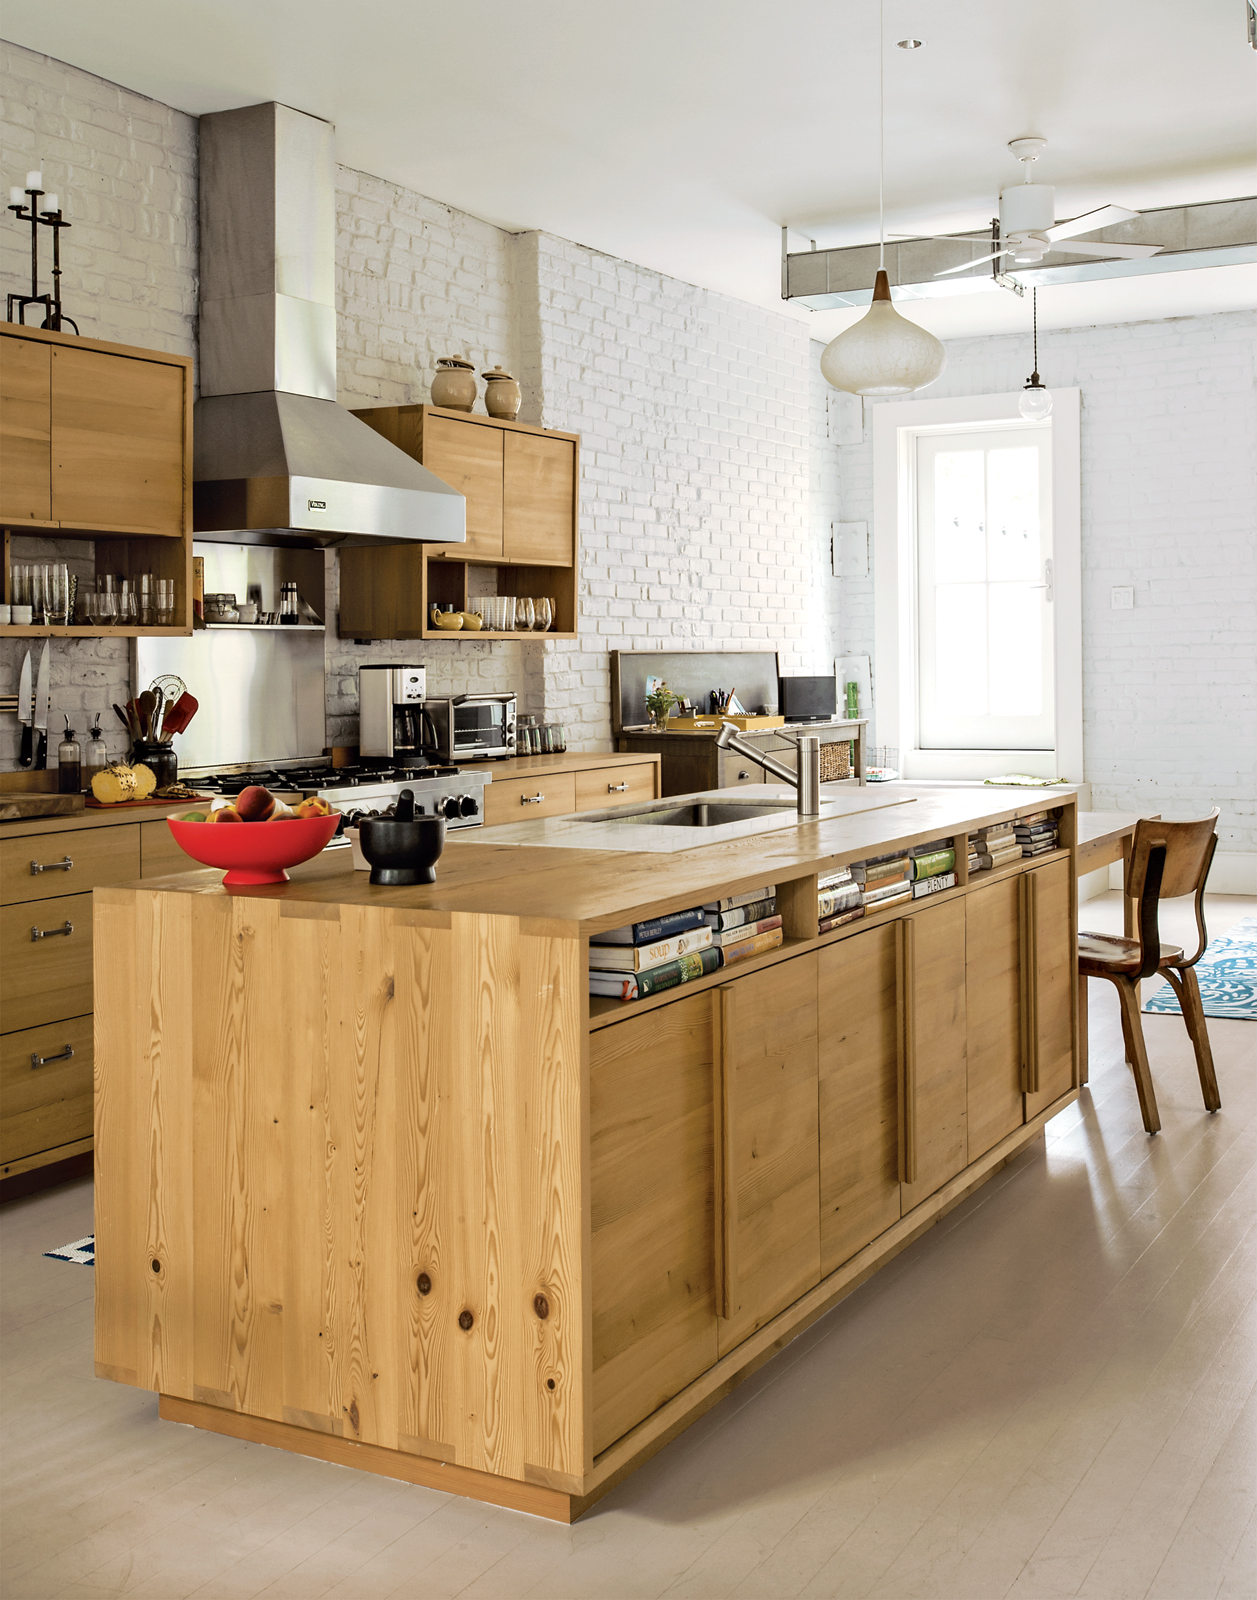 Modern kitchen with Douglas-fir island and cabinets